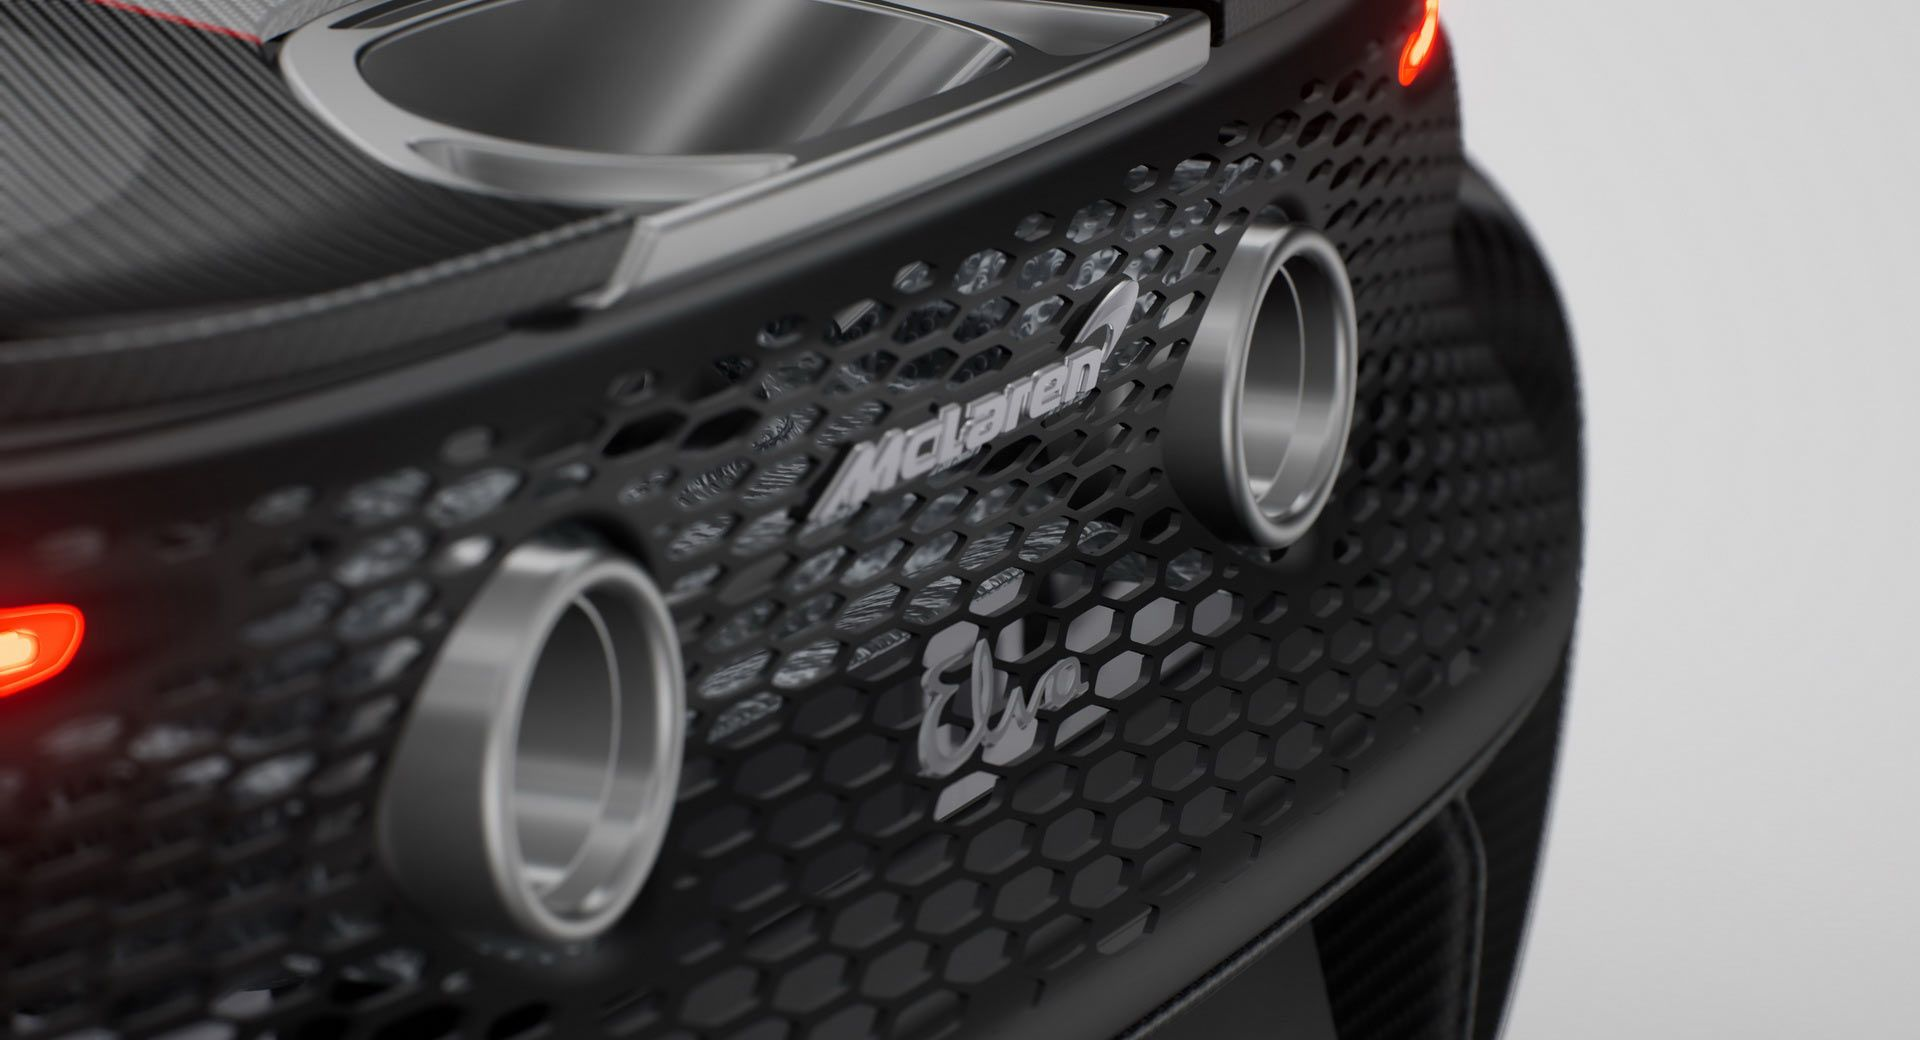 McLaren Thinks Synthetic Fuel Might Serve As EV Alternative #mclaren #reports #cars #carsofinstagram #carporn #carlifestyle #carnewsnetwork #carswithoutlimits #carspotting #dailycar #cardaily